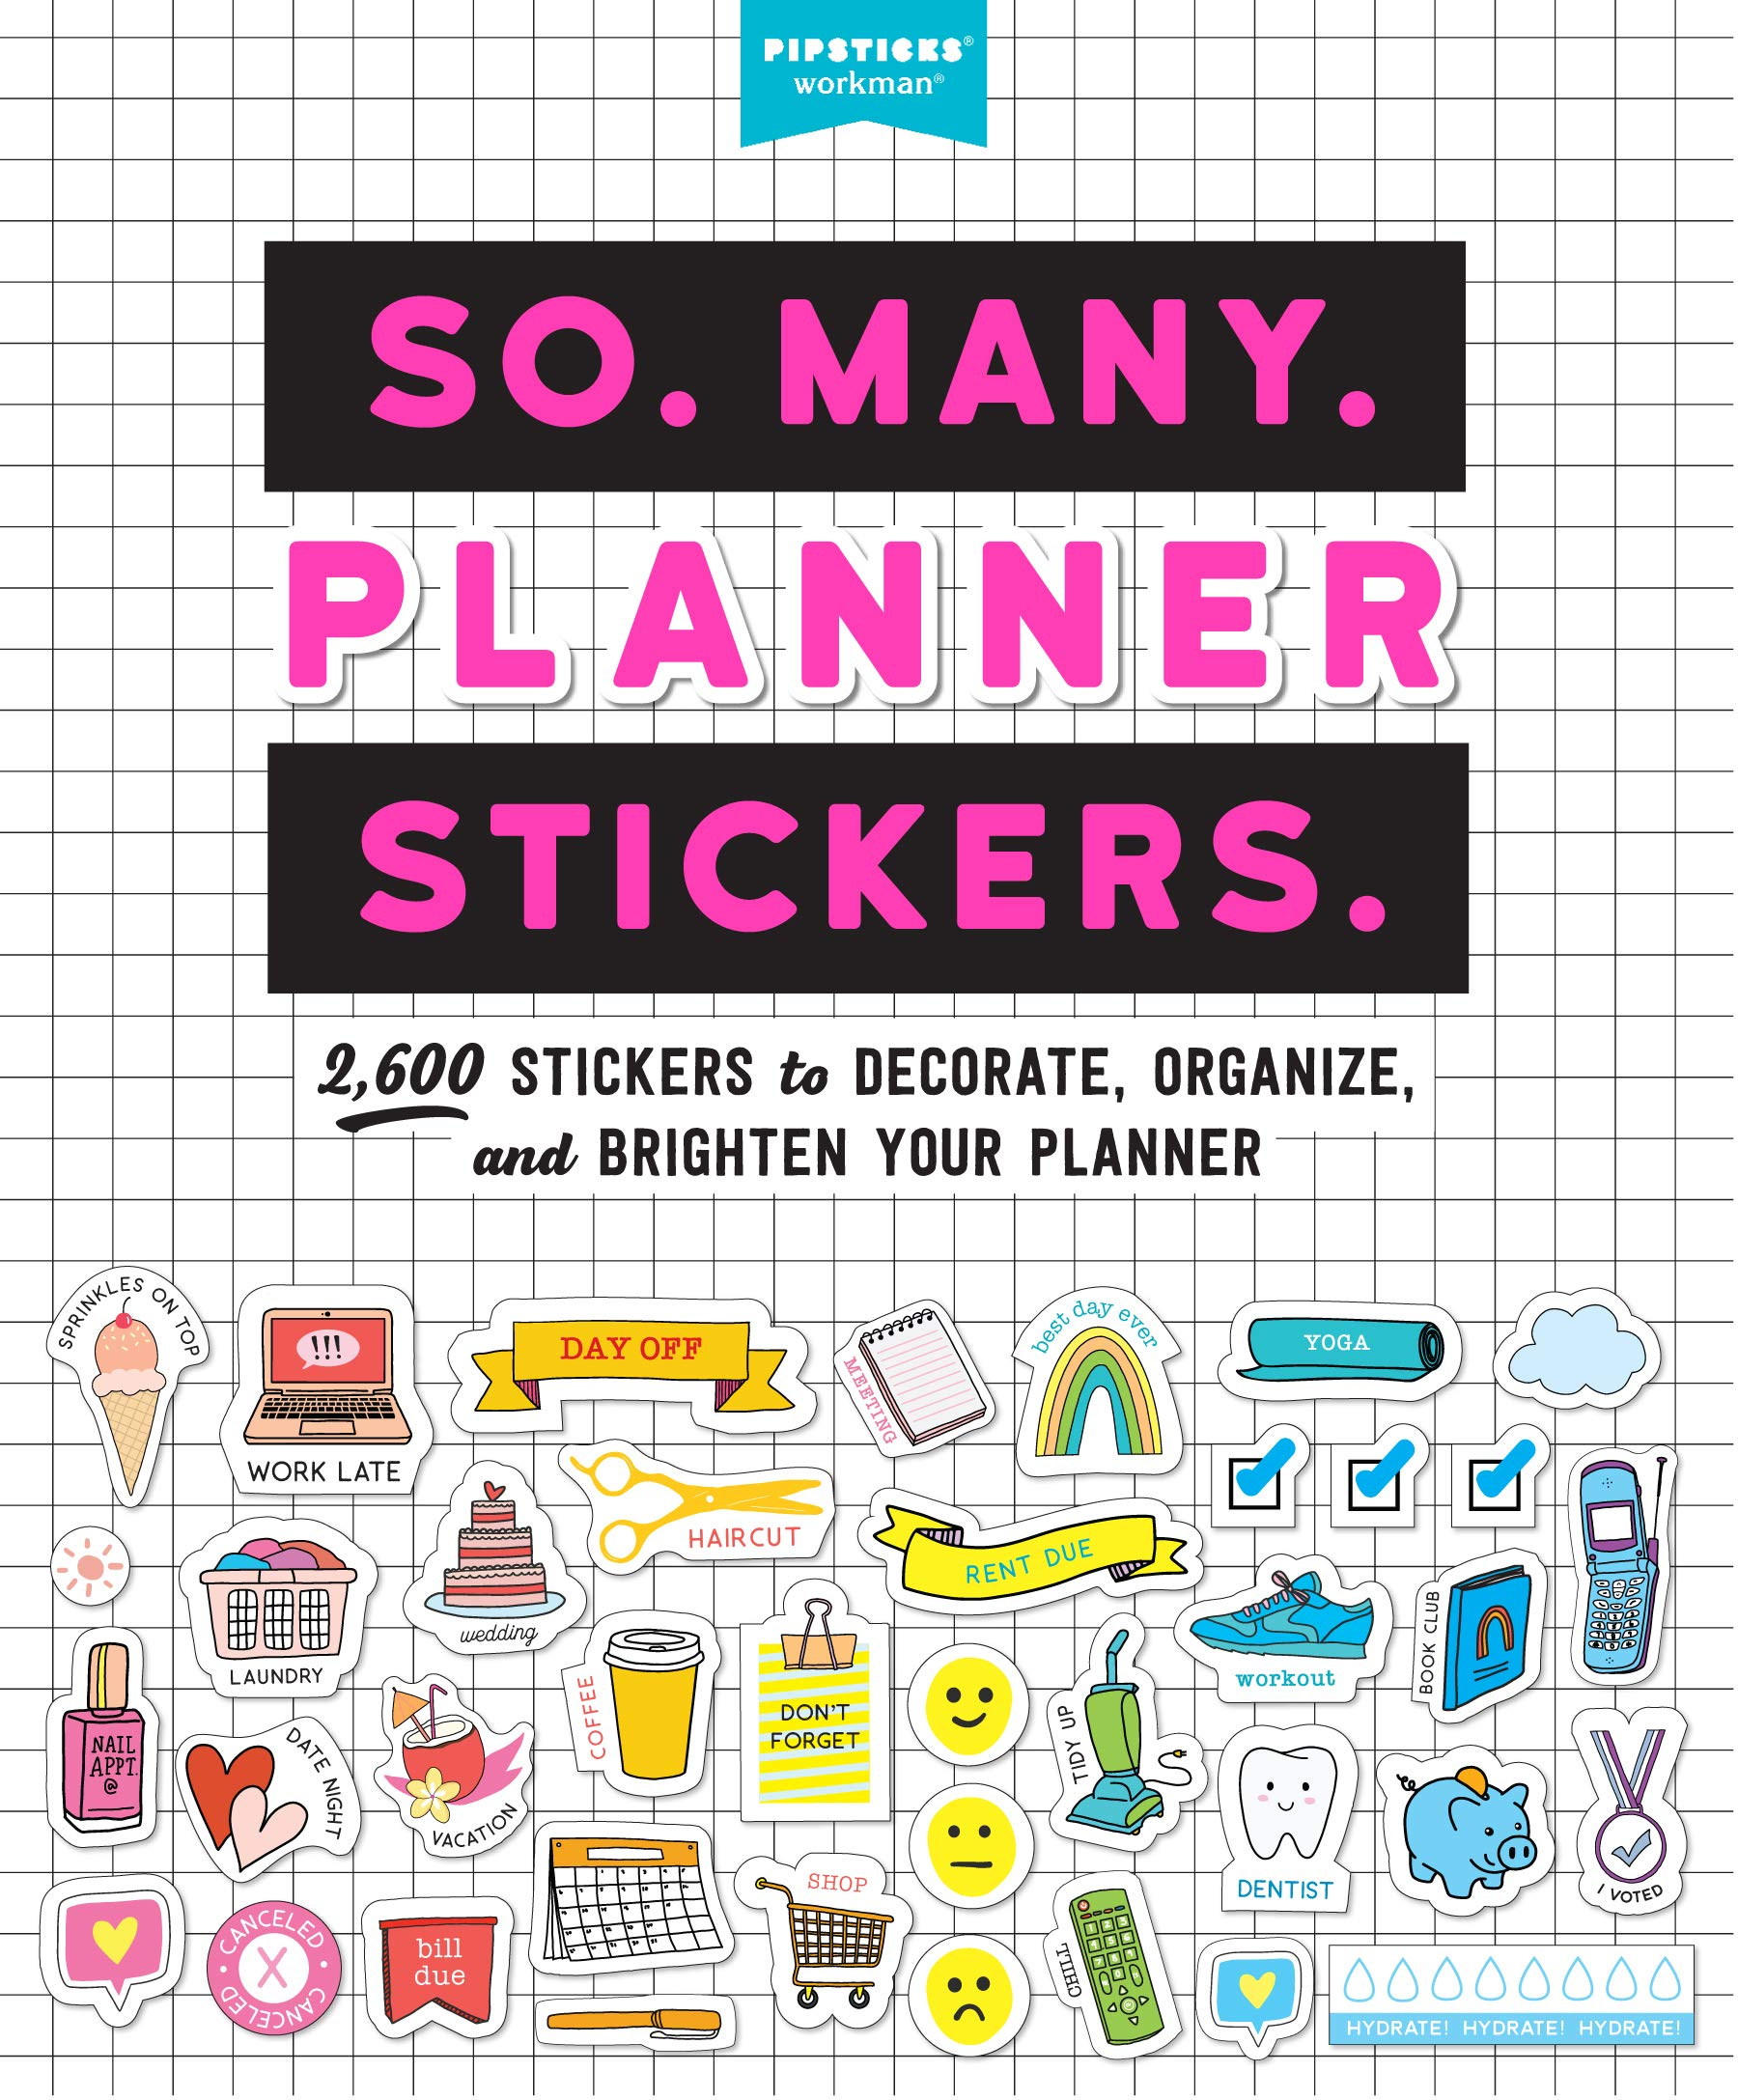 WI0213 Words And Icons Matte Sticker Paper, Take A Hike Planner stickers All Black Neutral Words And Icon Stickers